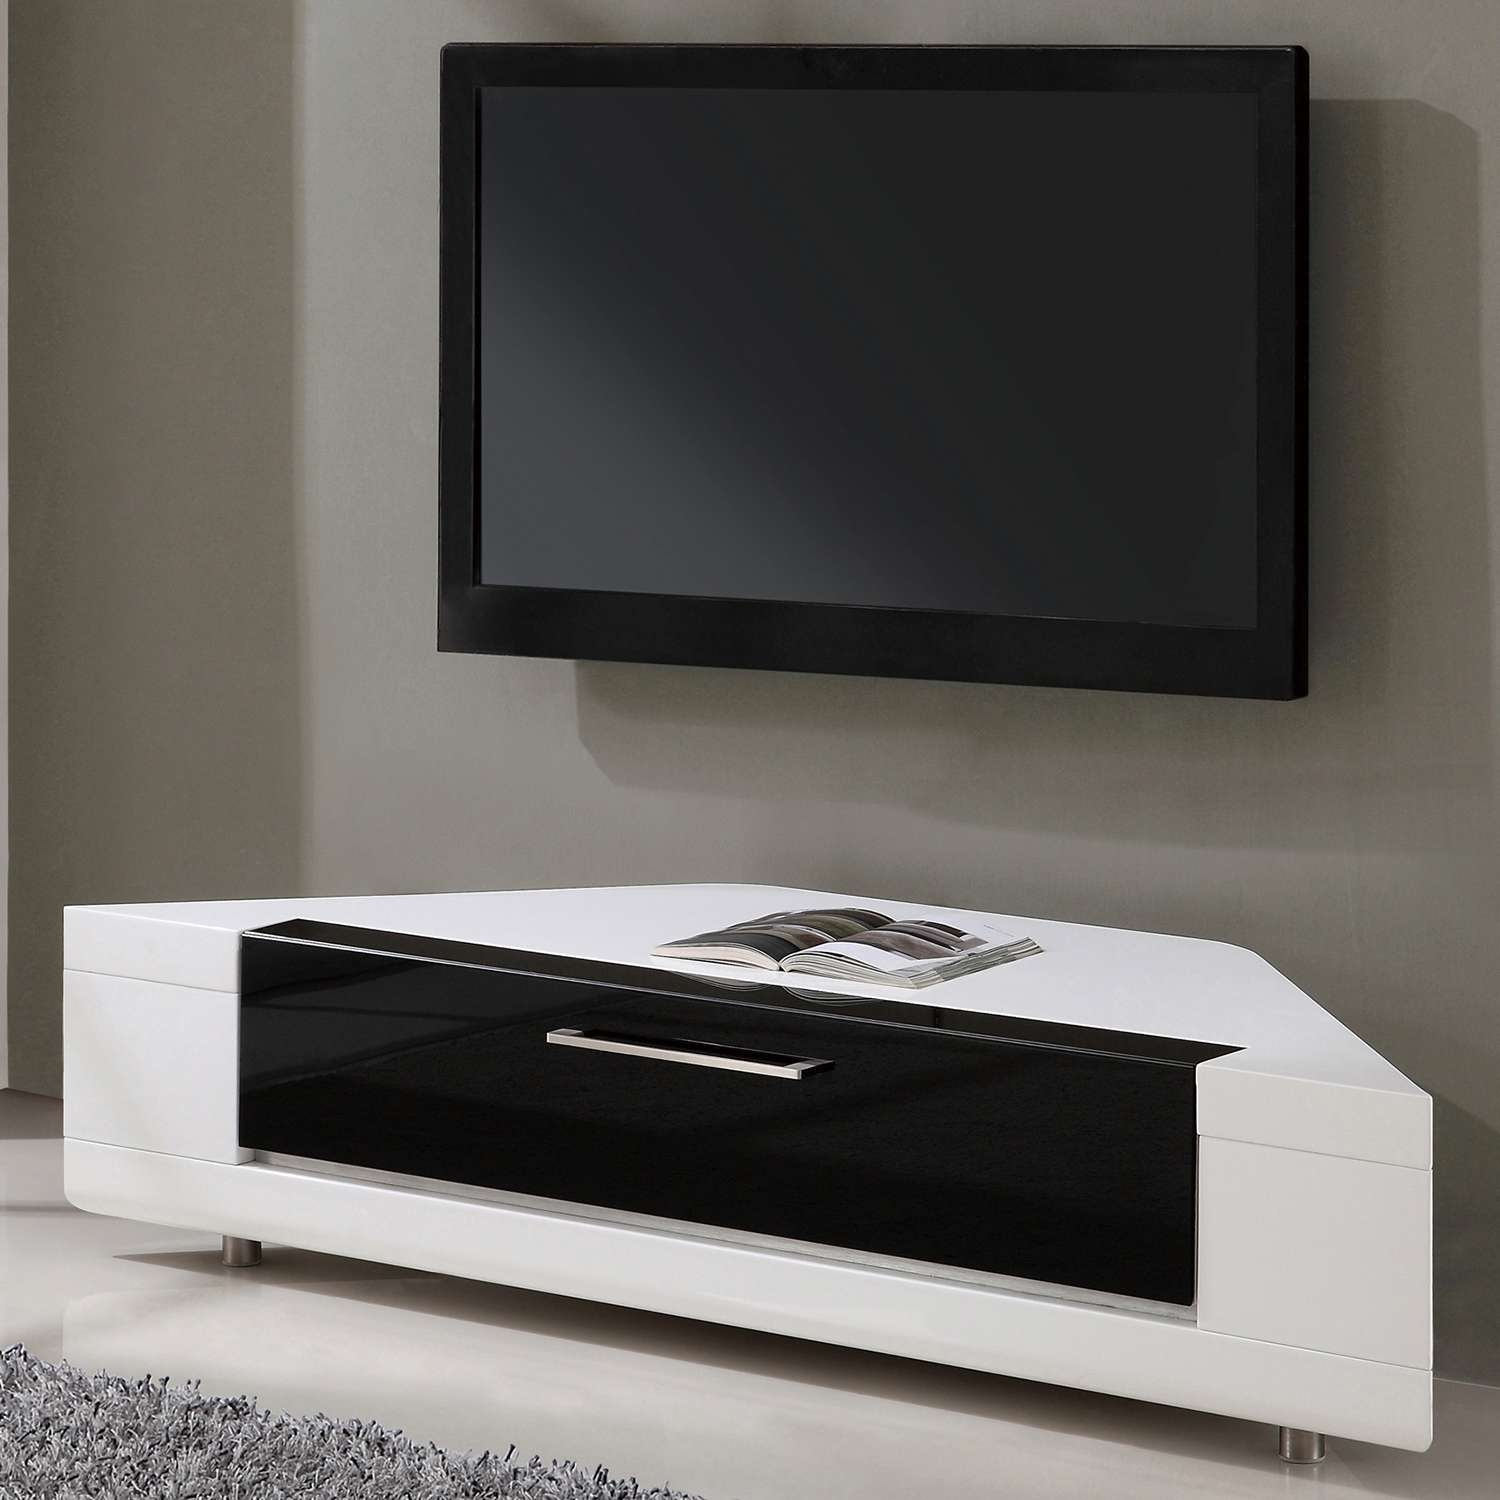 "B Modern Bm 634 Wht Editor Remix 60"" Corner Tv Stand In White High Pertaining To High Gloss Tv Cabinets (View 1 of 20)"